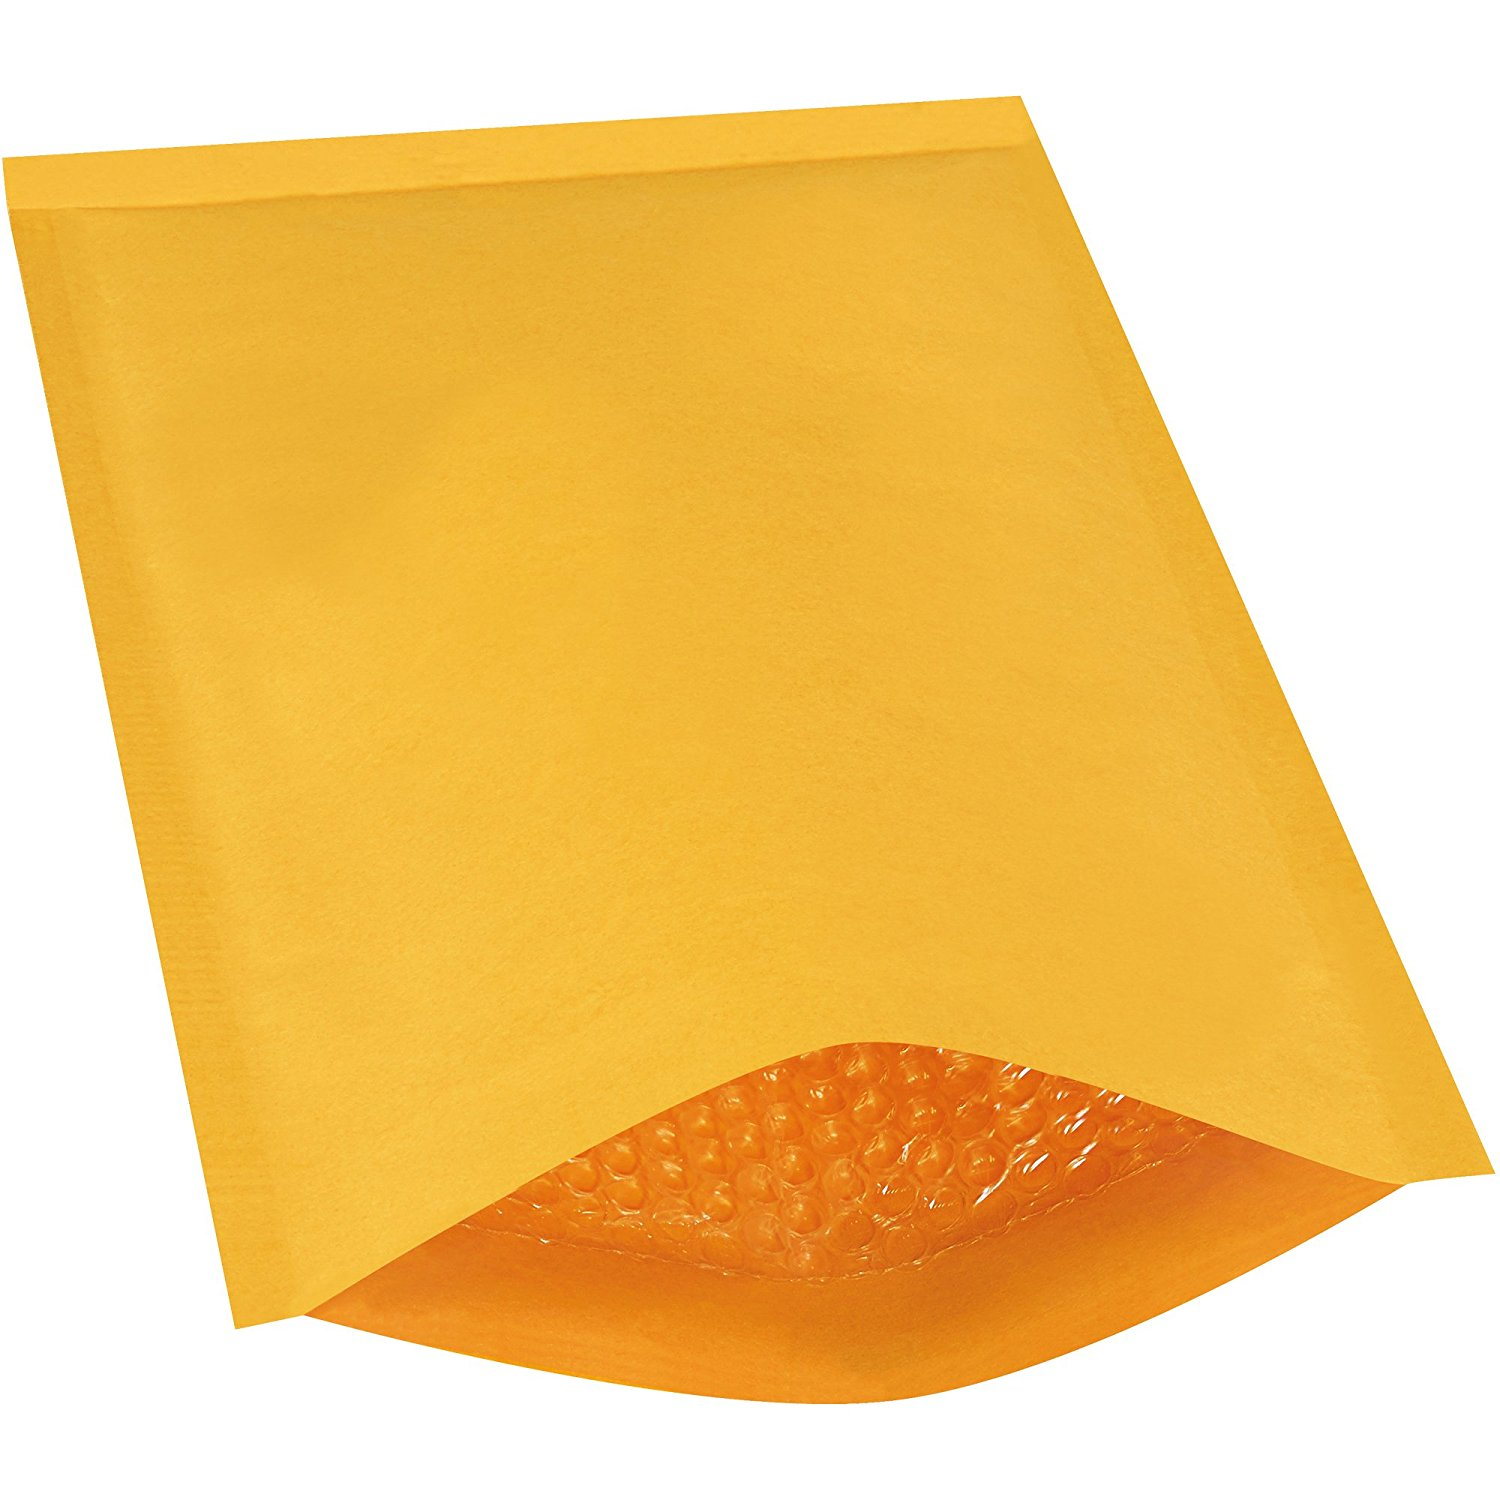 "Ship Now Supply SNB857 Heat-Seal Bubble Mailers, #4, 9 1/2"" x 14 1/2"", 9.5"" width, 14.5"" Length, Kraft (Pack of 100)"